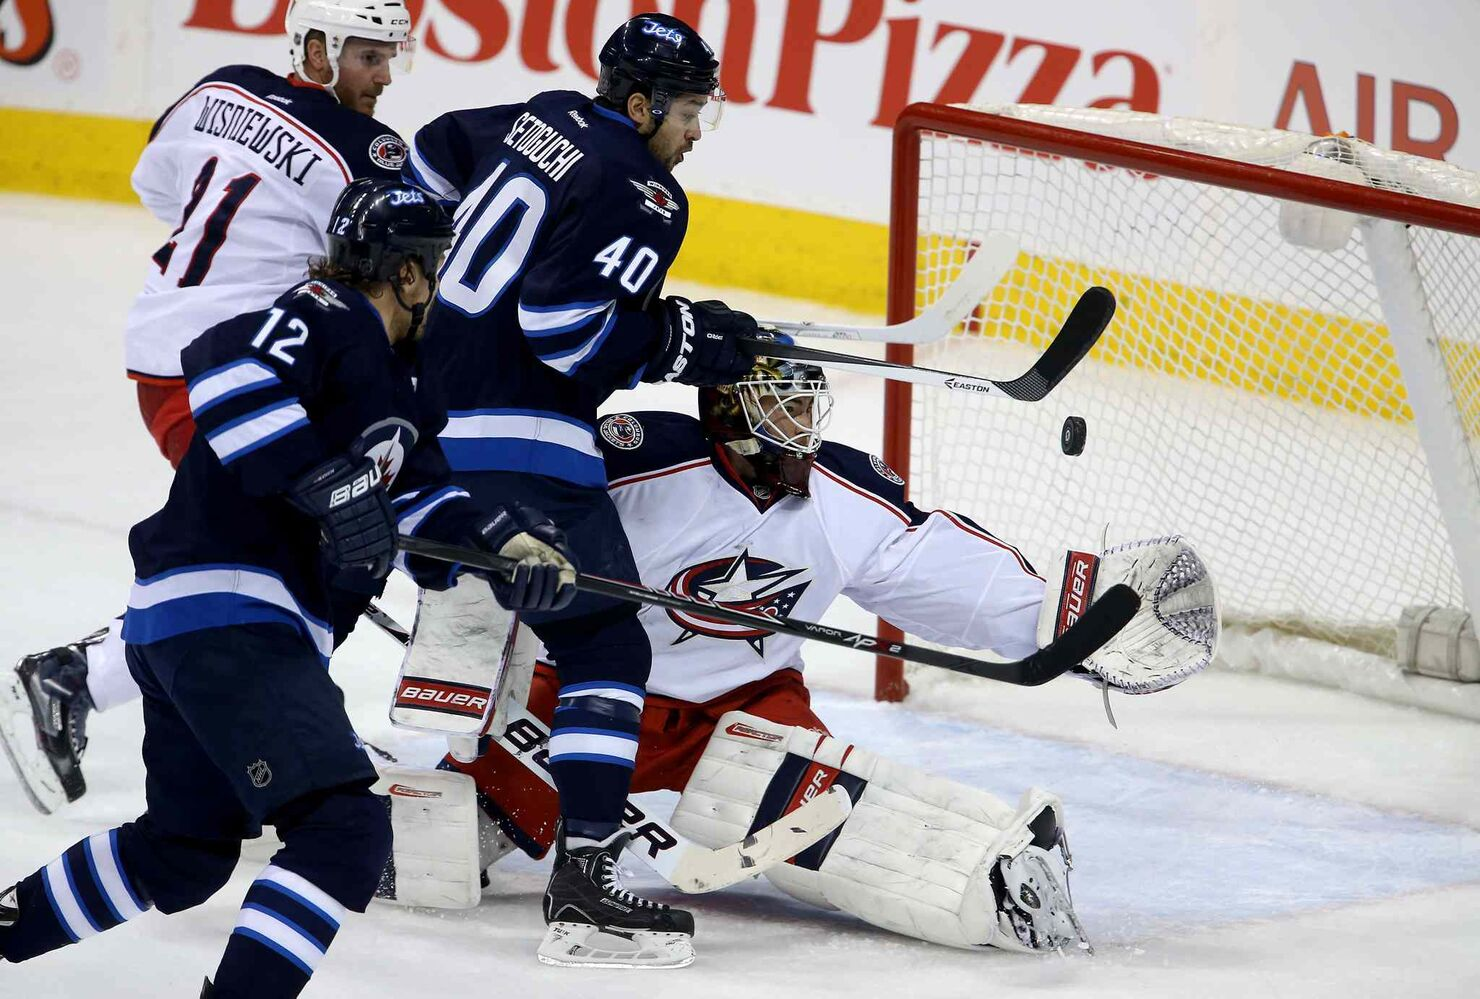 Columbus Blue Jackets' James Wisniewski (21) and Winnipeg Jets' Olli Jokinen (12) look on as Devin Setoguchi (40) tries to bat the puck past goaltender Curtis McElhinney (31) during the first period Saturday. McElhinney made the circus save.  (Trevor Hagan / Winnipeg Free Press)